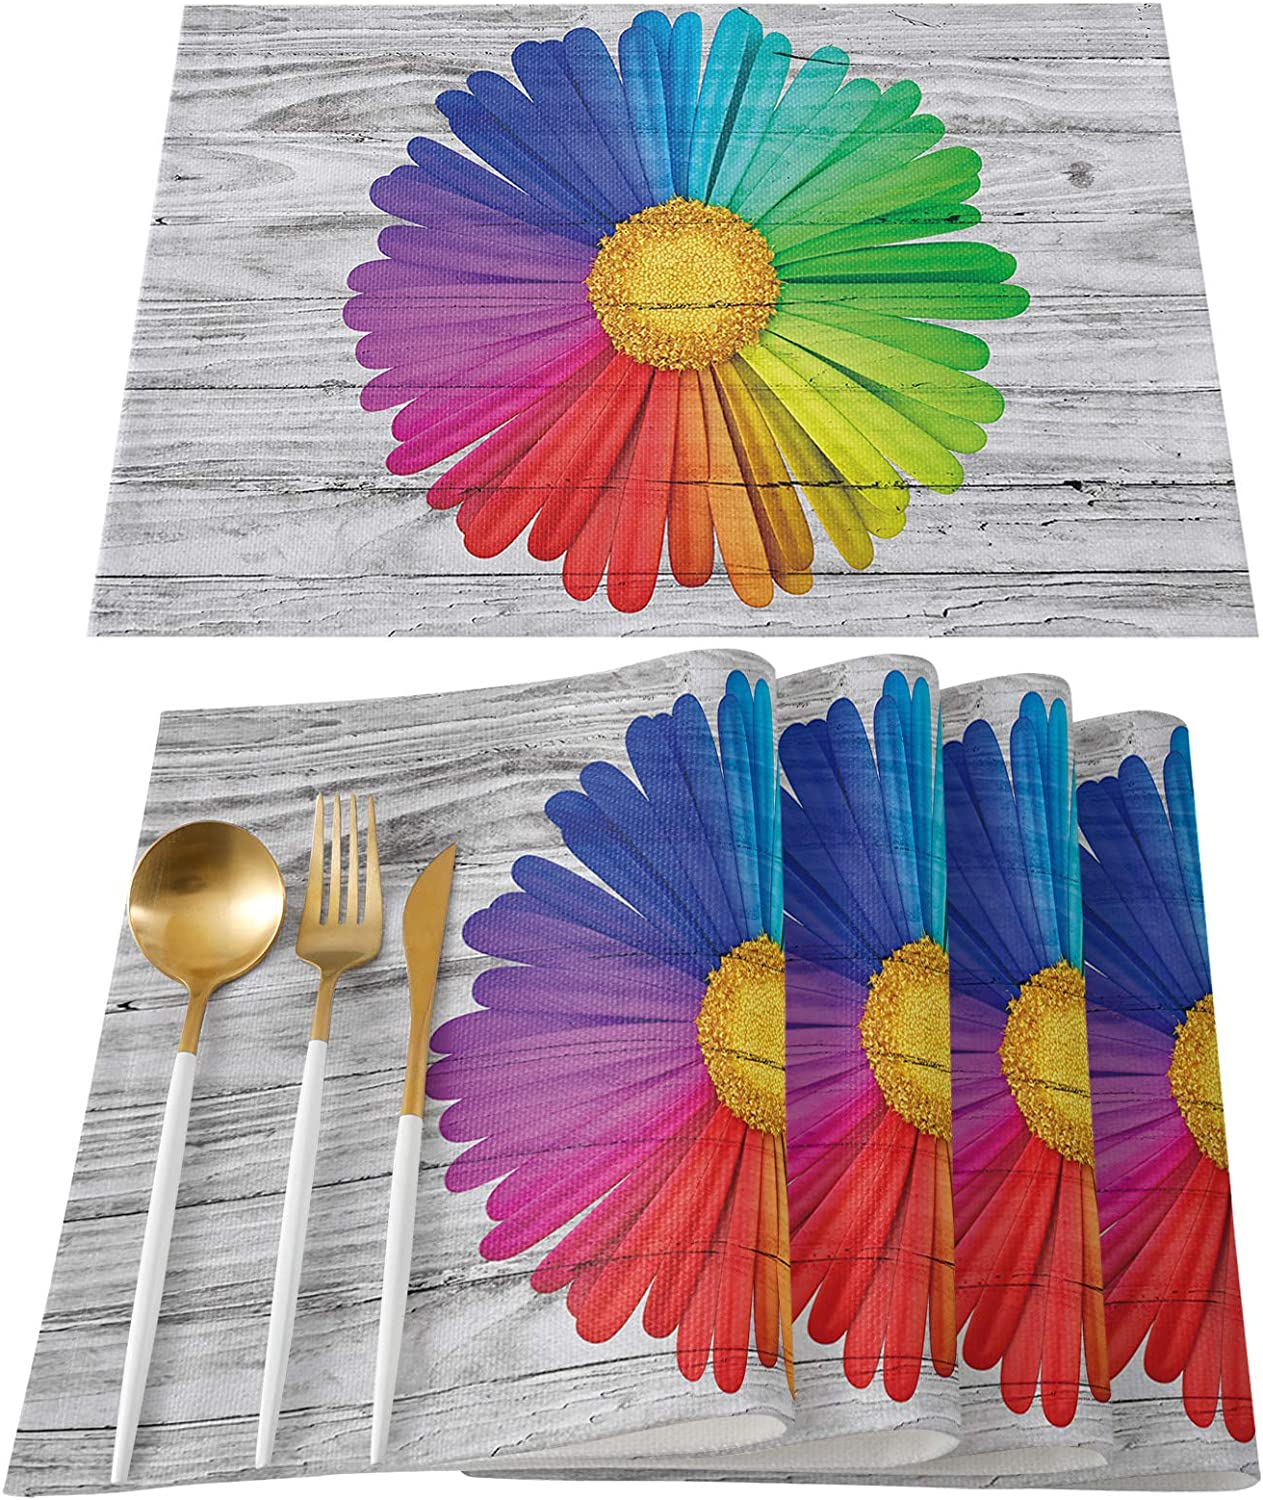 Inexpensive FAMILYDECOR Max 84% OFF Placemats for Kitchen Dining Table Set M Place 6 of